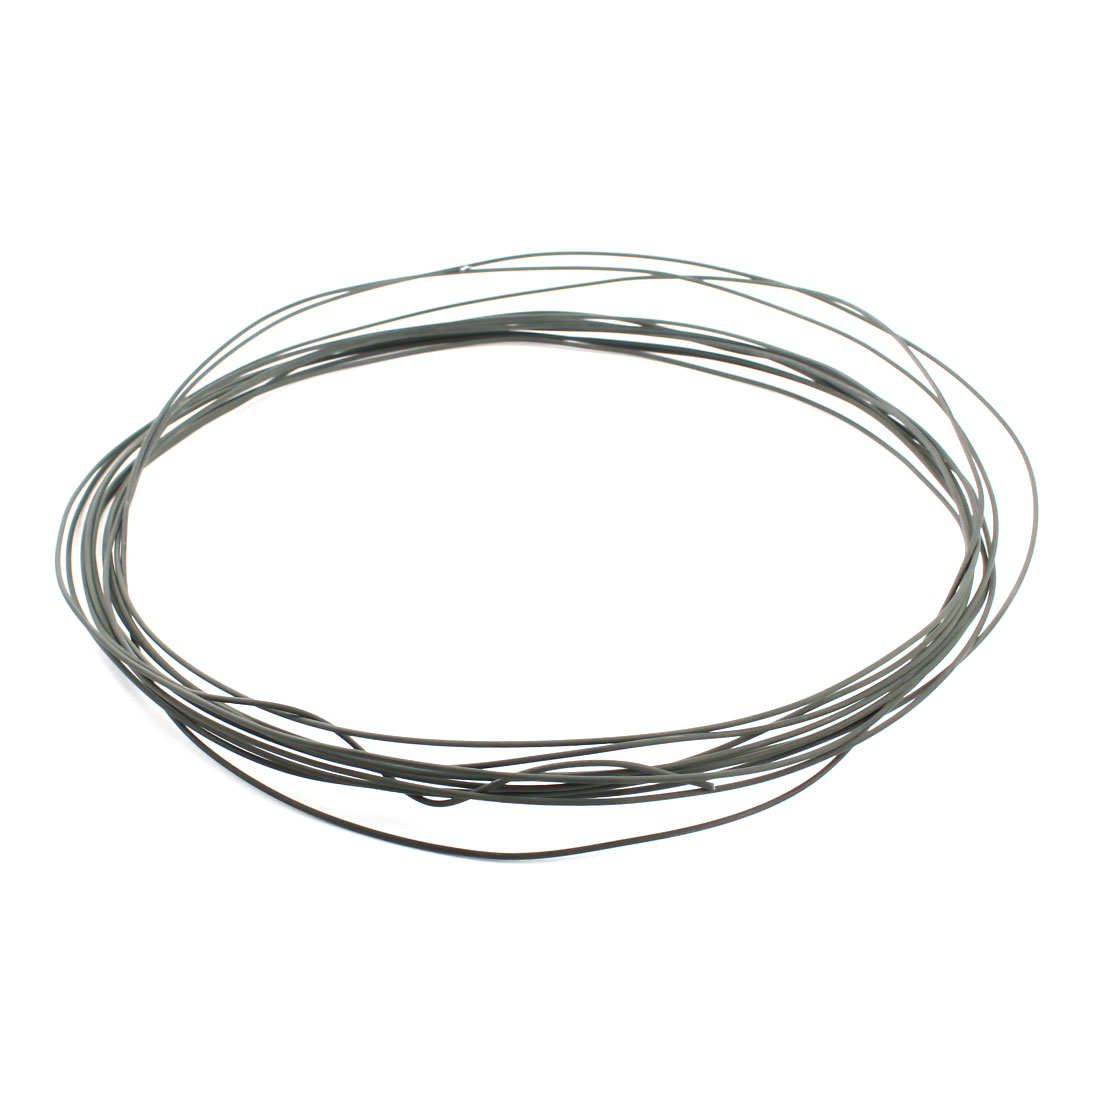 7.5M 25Ft Length 1.4mm AWG15 Gauge Nichrome Resistance Heat Coils Resistor Wire for Heating Elements